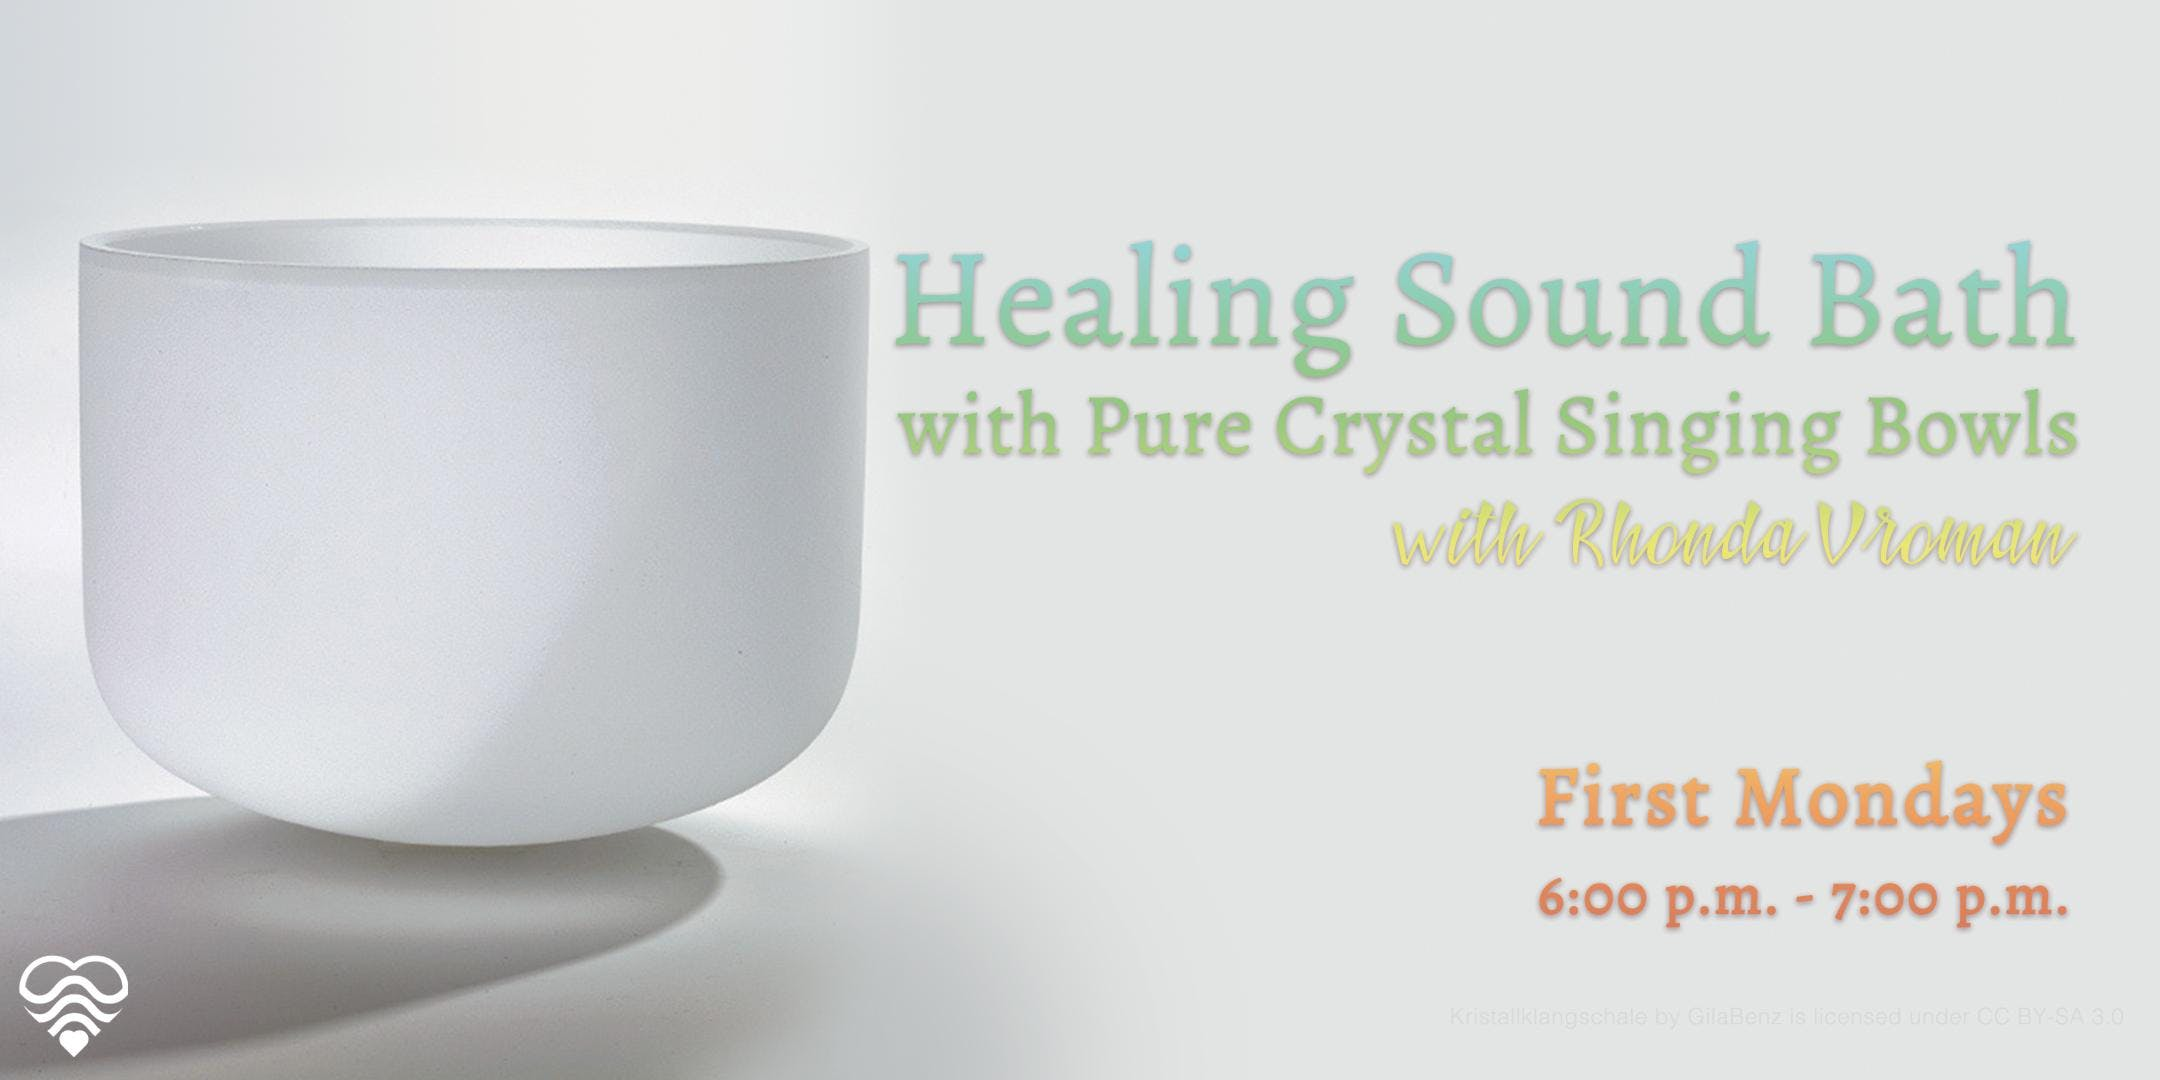 Healing Sound Bath with Pure Crystal Singing Bowls